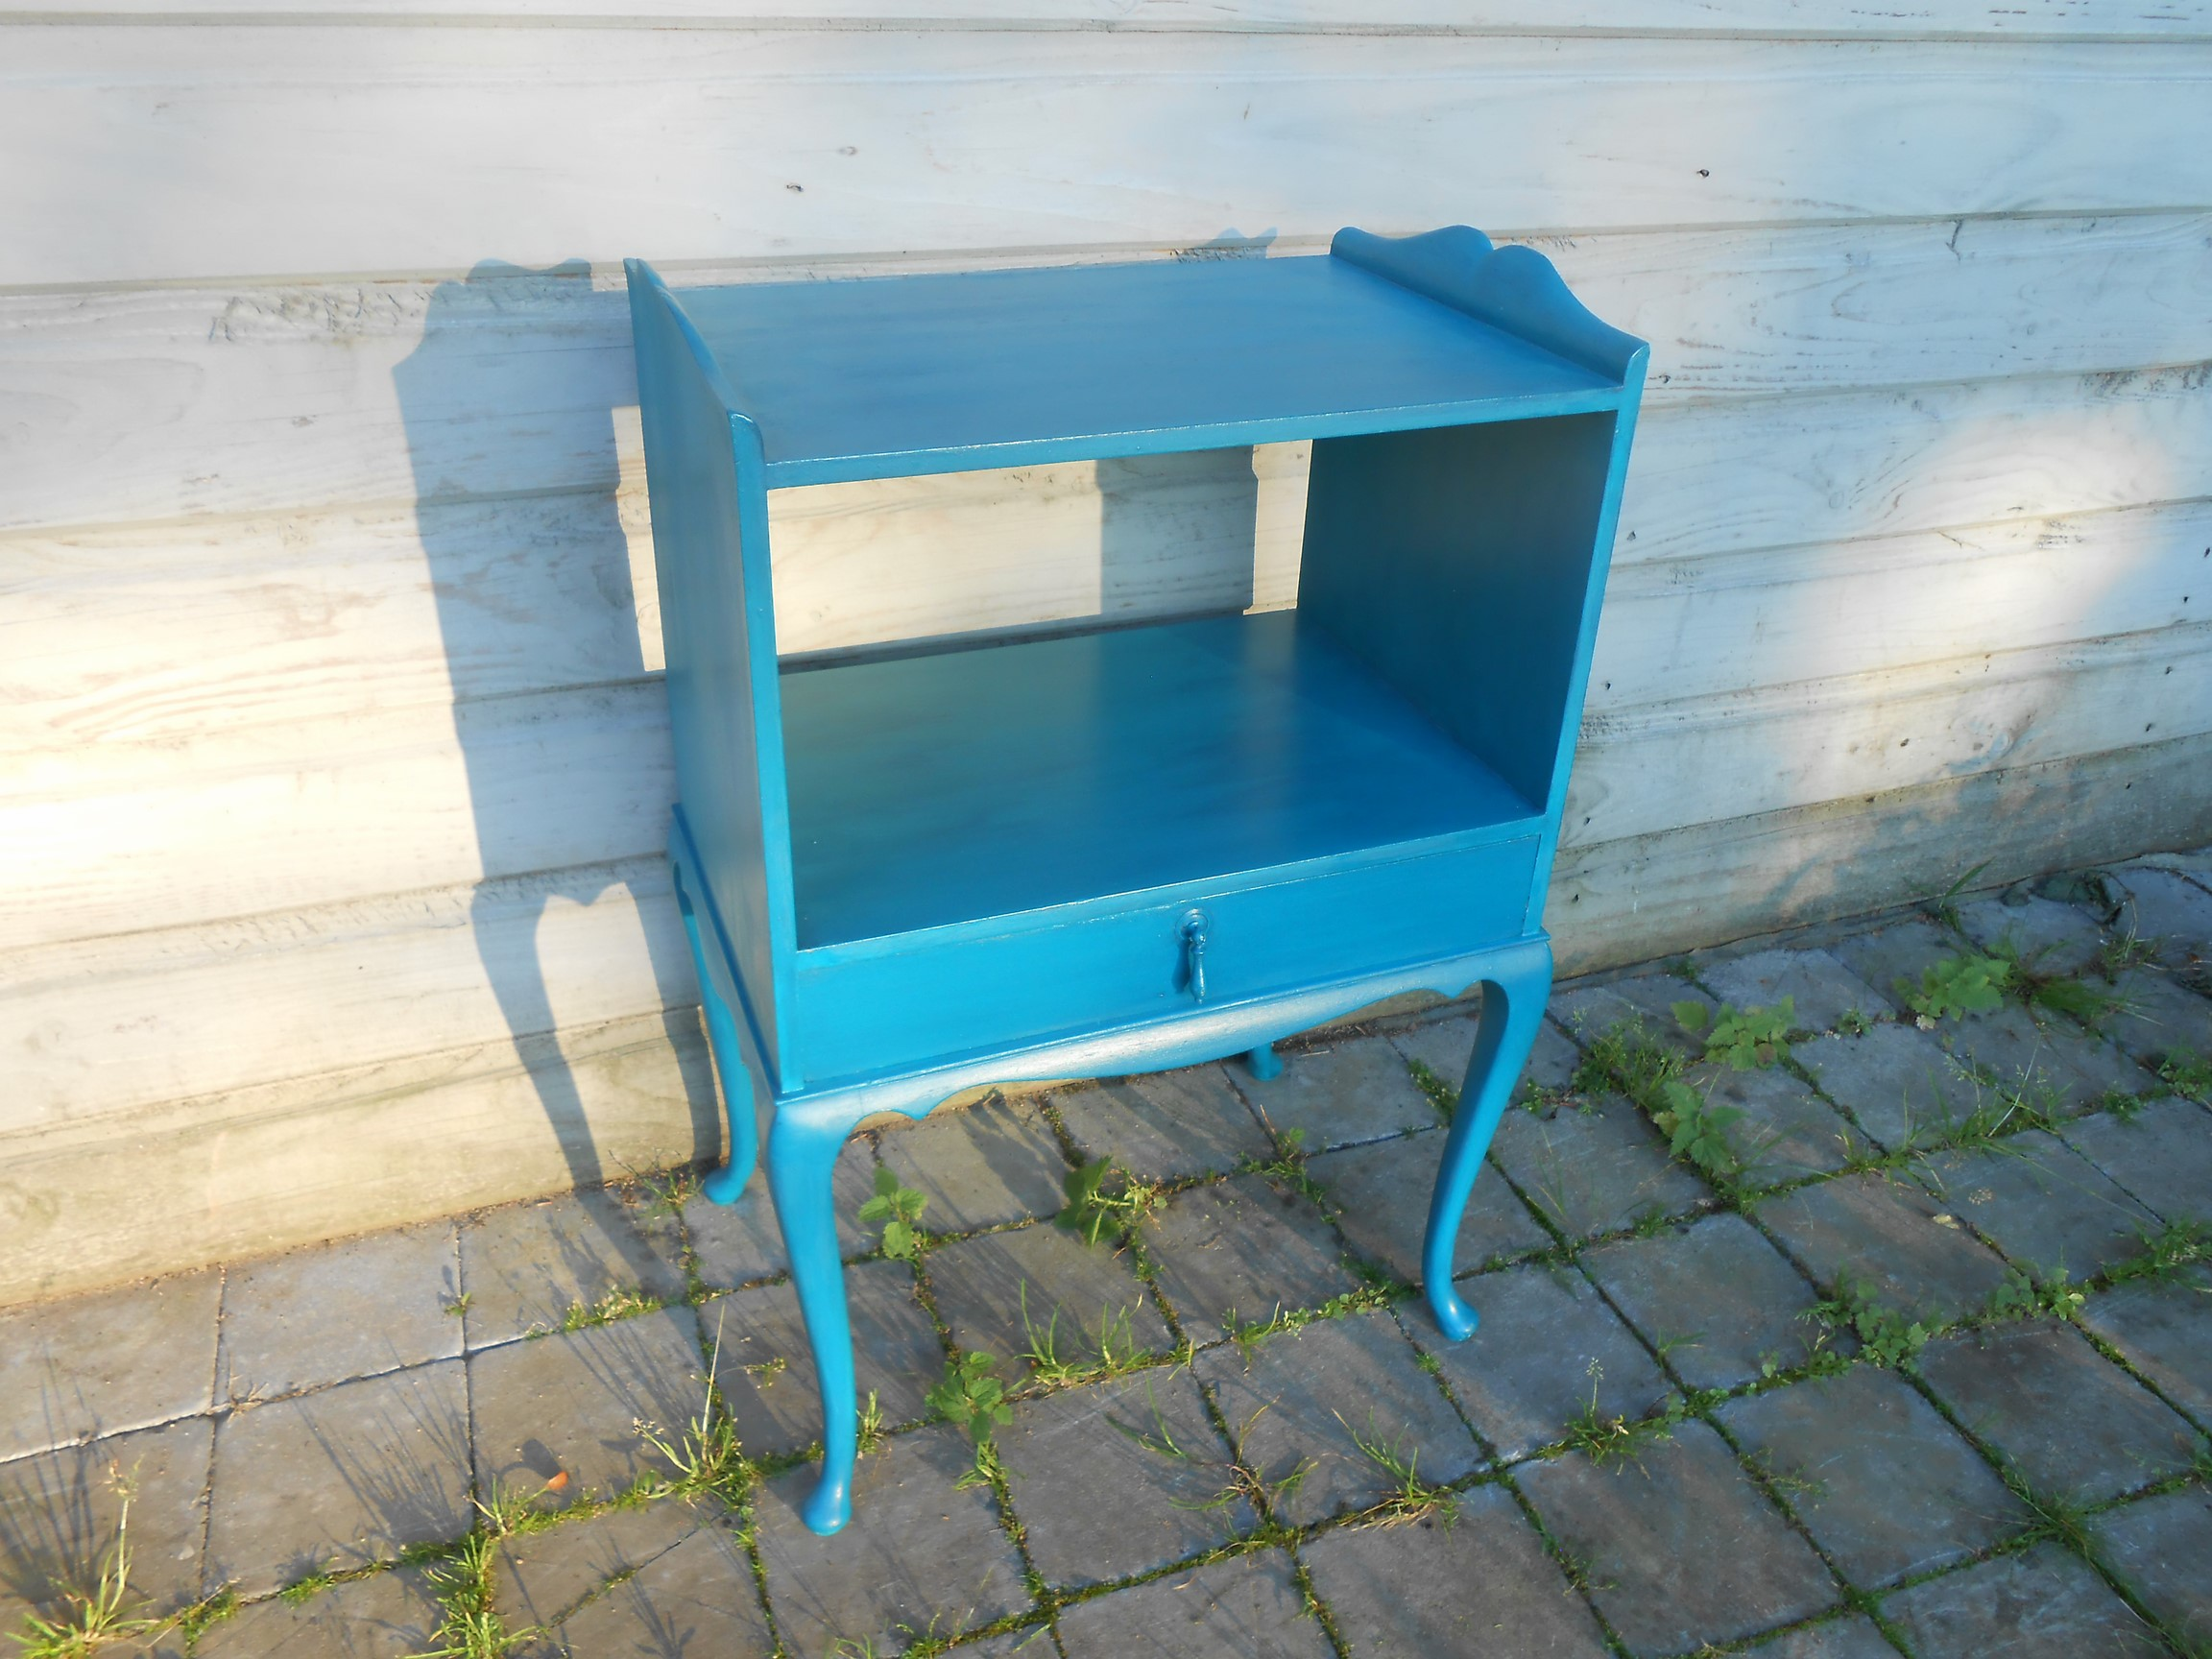 armoire d'appoint turquoise profond 1-1.